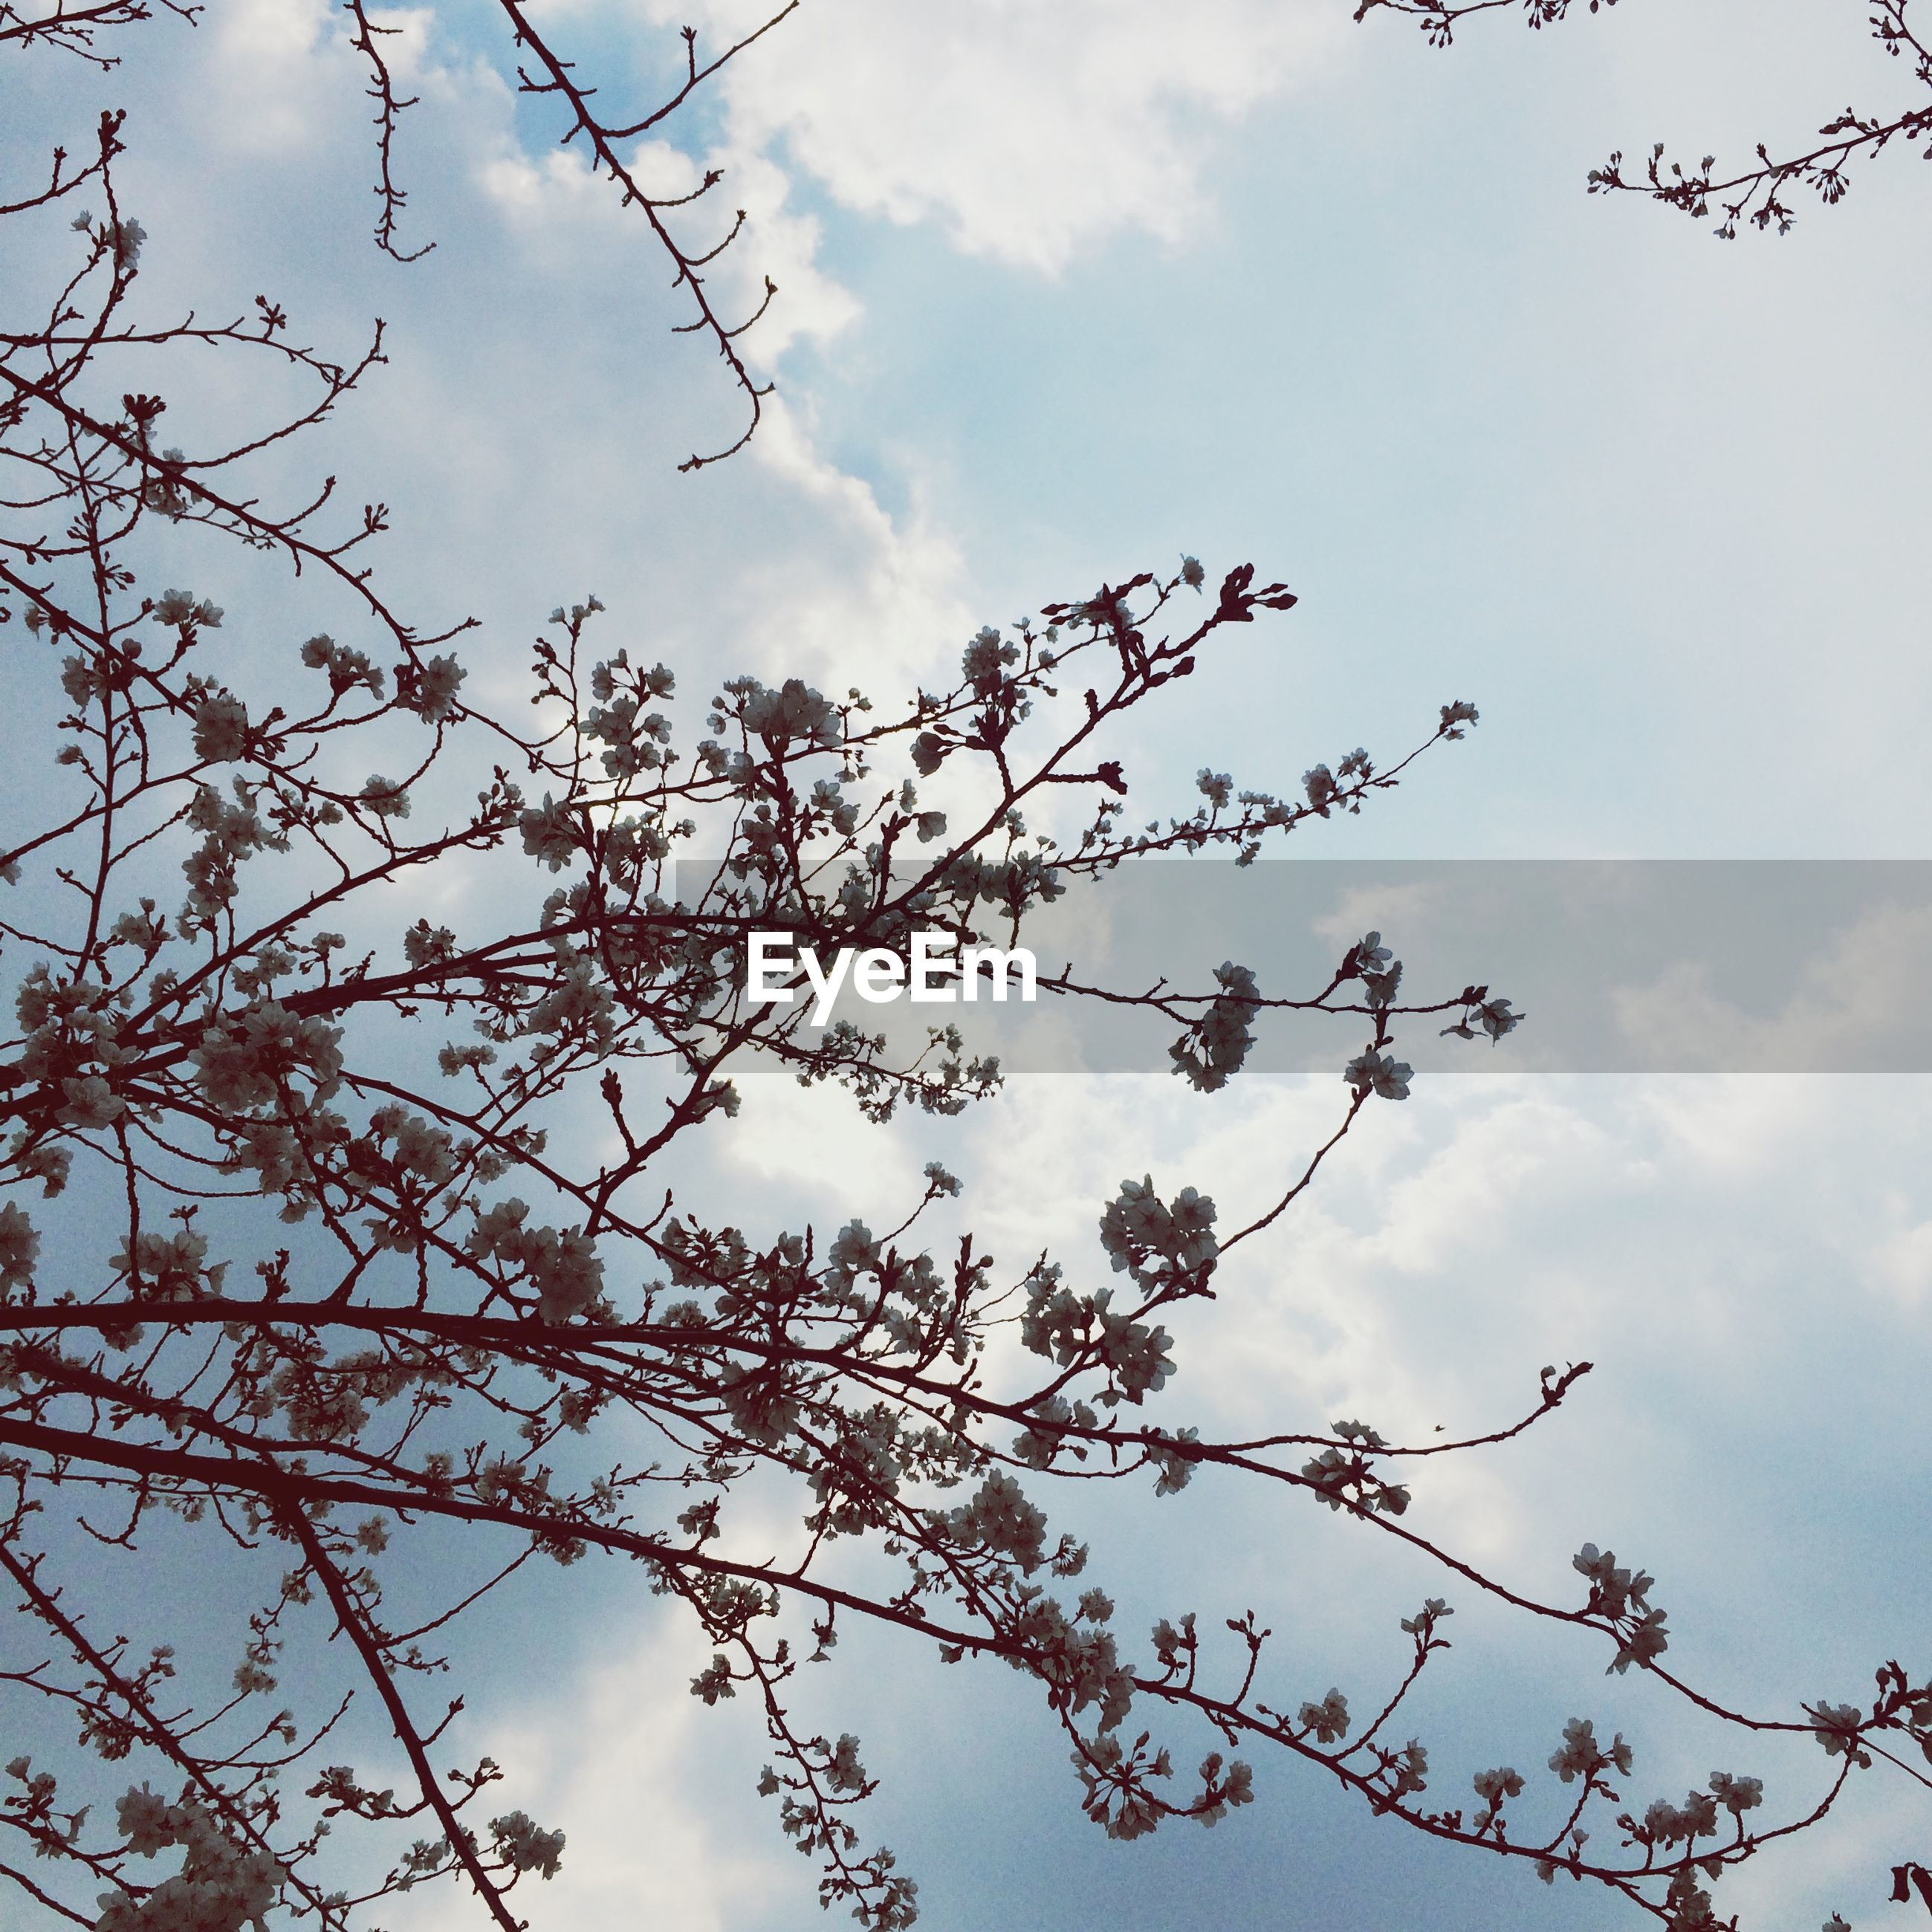 low angle view, branch, sky, tree, cloud - sky, nature, growth, beauty in nature, cloud, cloudy, tranquility, bare tree, outdoors, day, twig, high section, leaf, no people, scenics, overcast